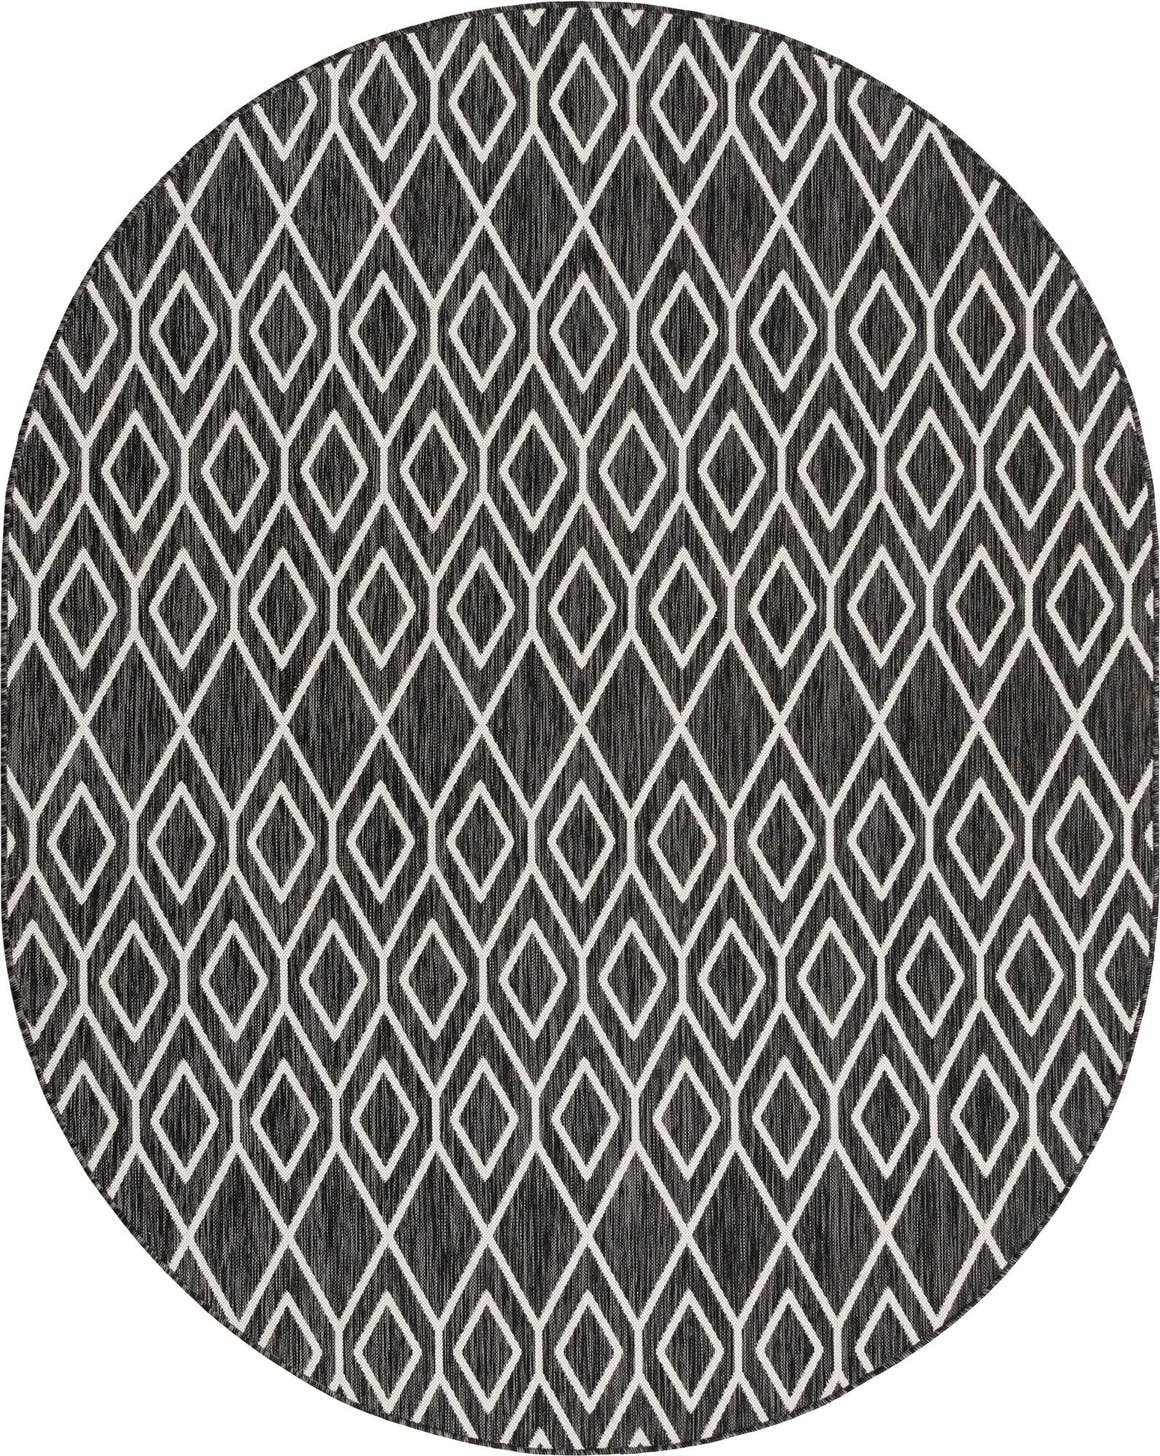 7' 10 x 10' Jill Zarin Outdoor Oval Rug main image